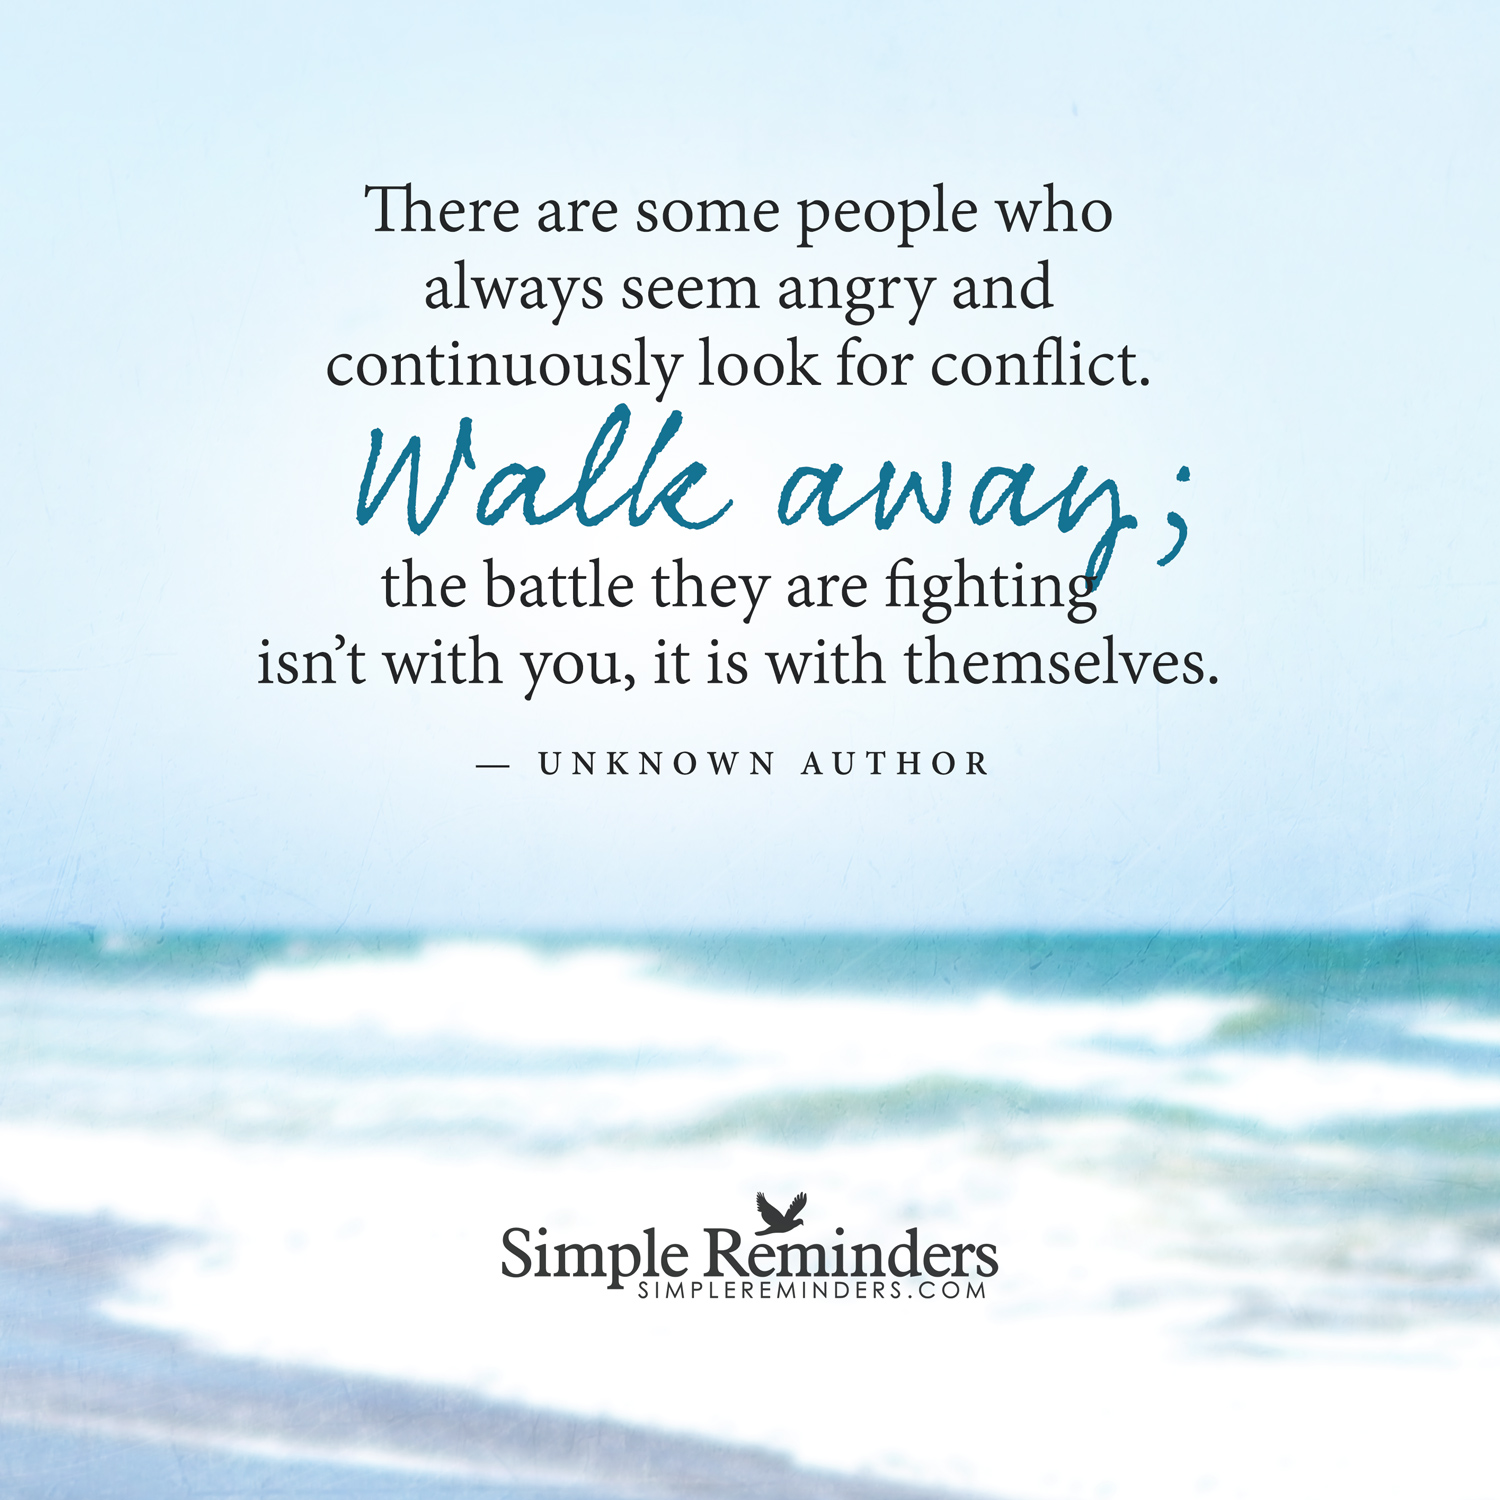 Internal Conflict Quotes >> Quotes About Family Conflict. QuotesGram